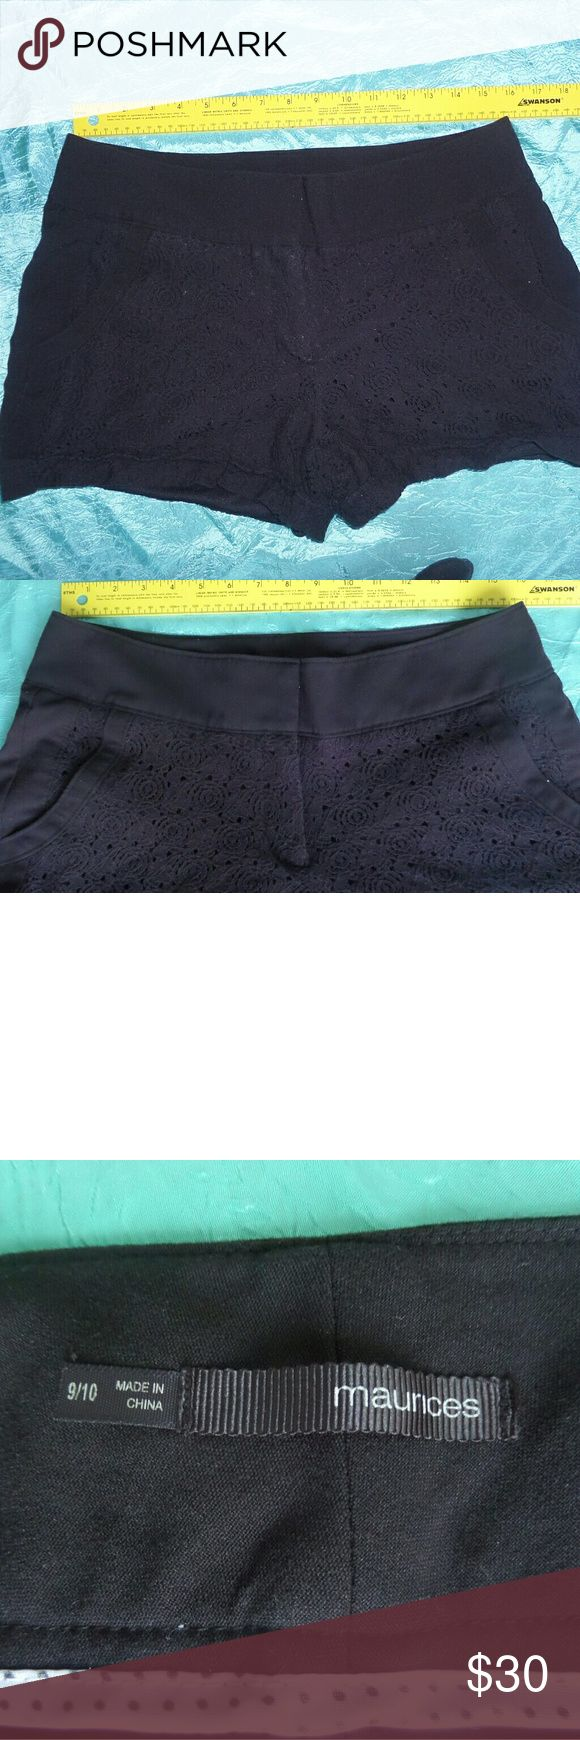 """Maurices I Am Smart Dress Mid Rise Short Blk 9/10 Maurices I Am Smart Dress Short Short zip fly closure with 1 button and 2 metal hooks 2 front pockets shorts have double lining outer-layer is like a lace crochet material please see pictures   SIZE: size 9/10 waist approx 32"""" rise approx 10"""" hip approx 42"""" inseam approx 3"""" leg opening approx 20""""  CONDITION: good pre-owned condition might show a little fade or wear  MATERIAL: Exterior: 77% cotton 23% nylon Contrast: 84% Polyester 13% rayon 3%…"""